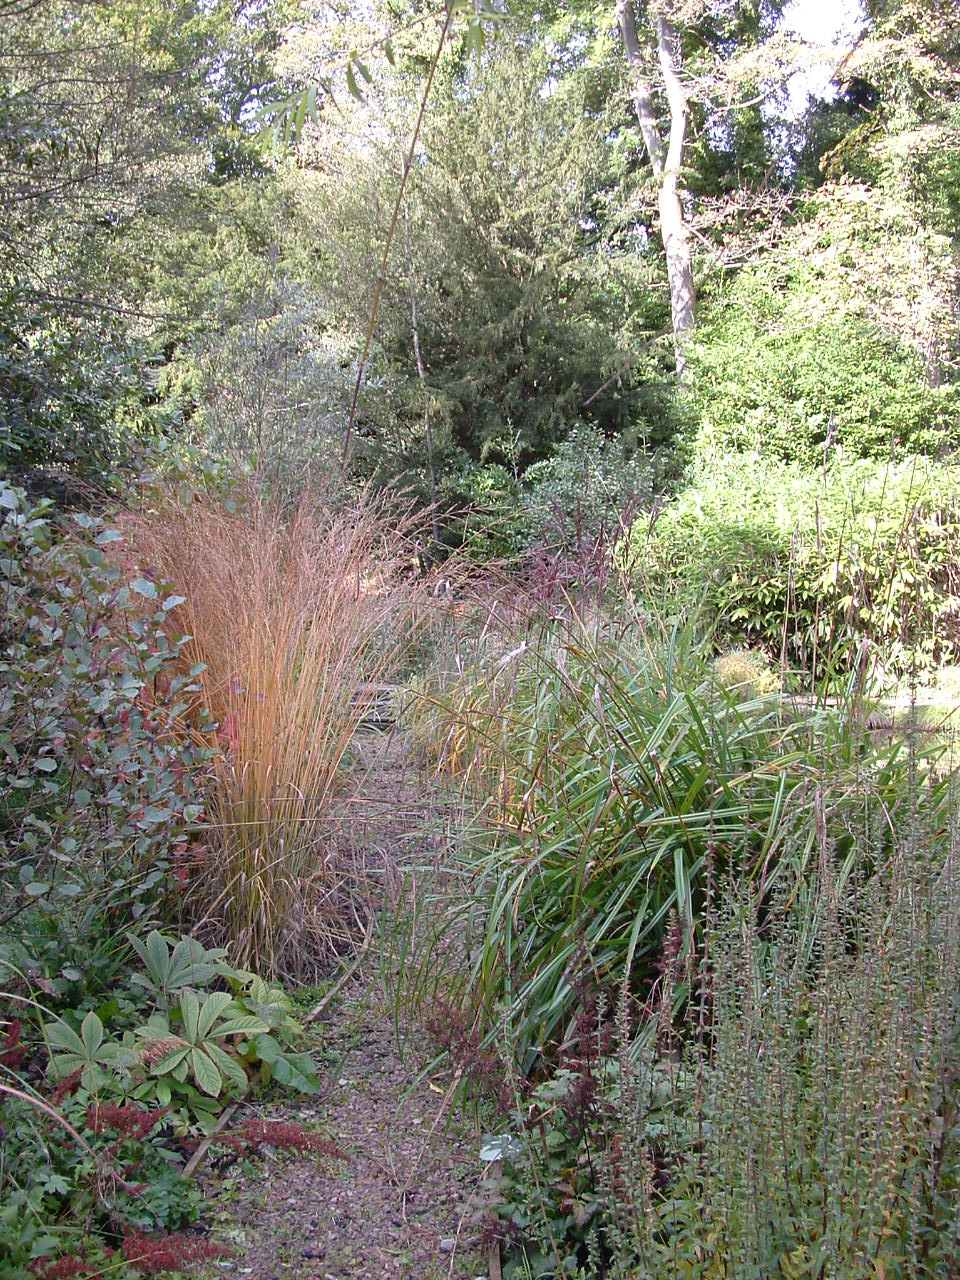 An autumn tinted Panicum grass forms a temporary focal point among lush woodland planting